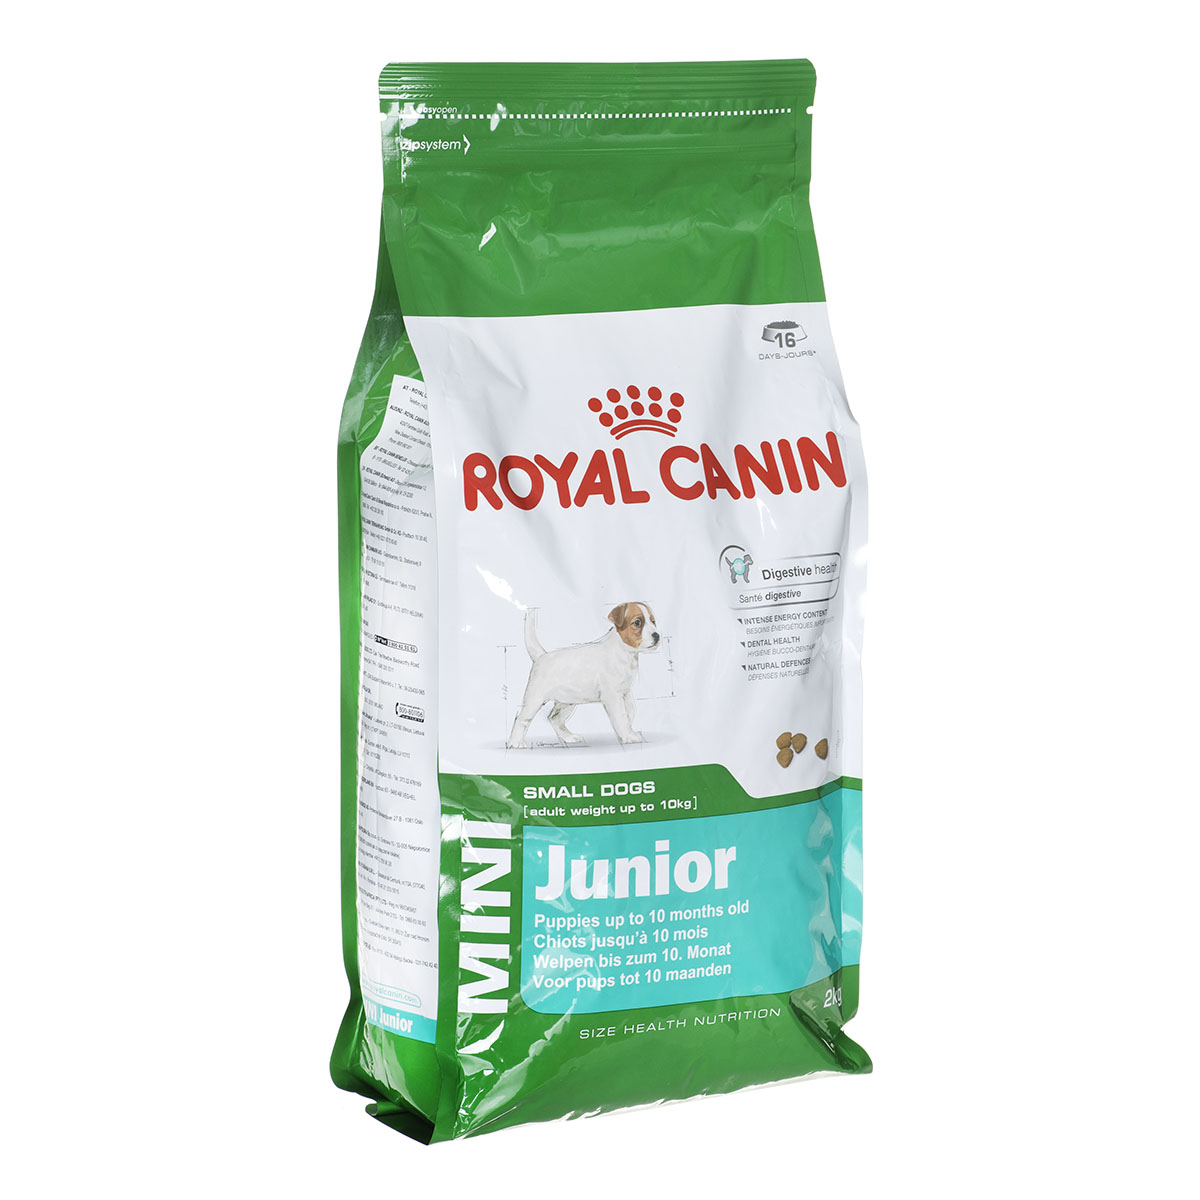 Royal canin junior.jpg